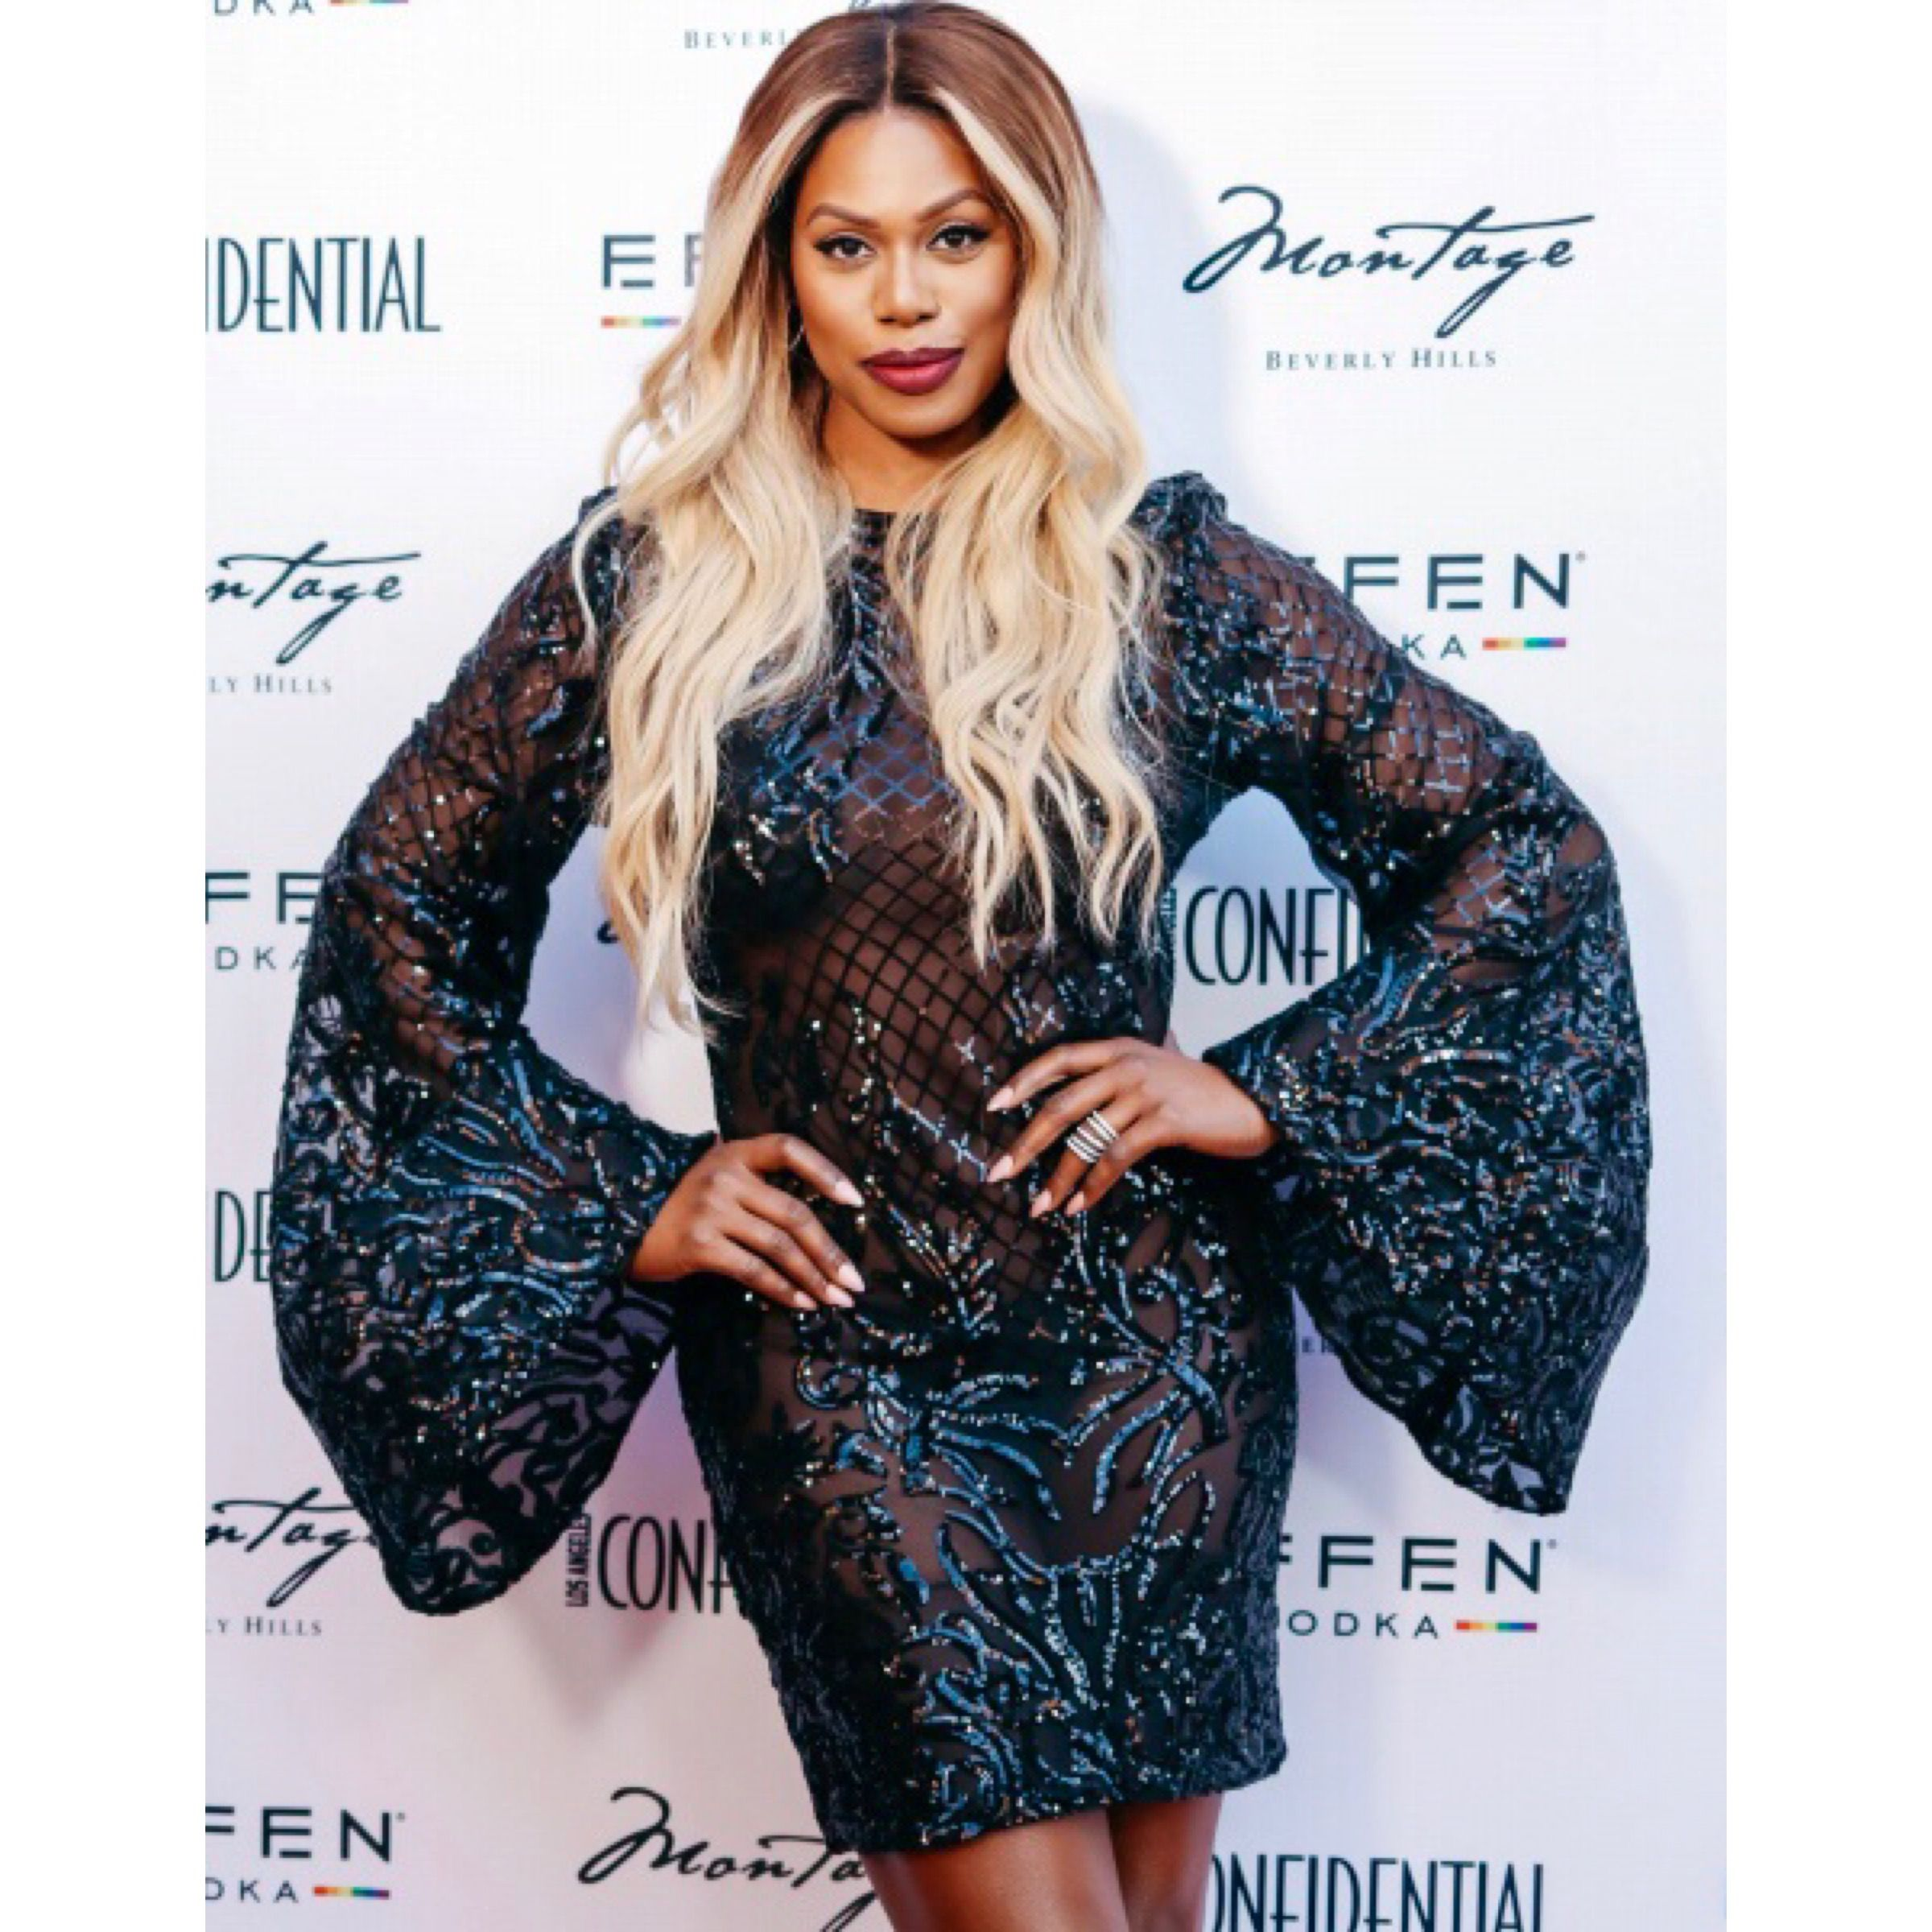 """🌈 #Pride Month is approaching and we are gearing up for the season. Today we share a pride event we did recently. The ravishing #LaverneCox hosted the event #PortraitsofPride"""" in partnership with #GLAAD.  📸Photo Credit: Dylan Lujano  #stepandrepeat #stepandrepeats #redcarpet #laconfidential #lapride  #lgbtq #lgbtqpride #lgbt #lacpride #oitnb #oitnbfamily #oitnbfans #orangeisthenewblack #anthonyrapp #portraitsofpride #wilsoncruz  #startrekdiscovery #backdrop #eventprofs #eventing #eventplanner"""